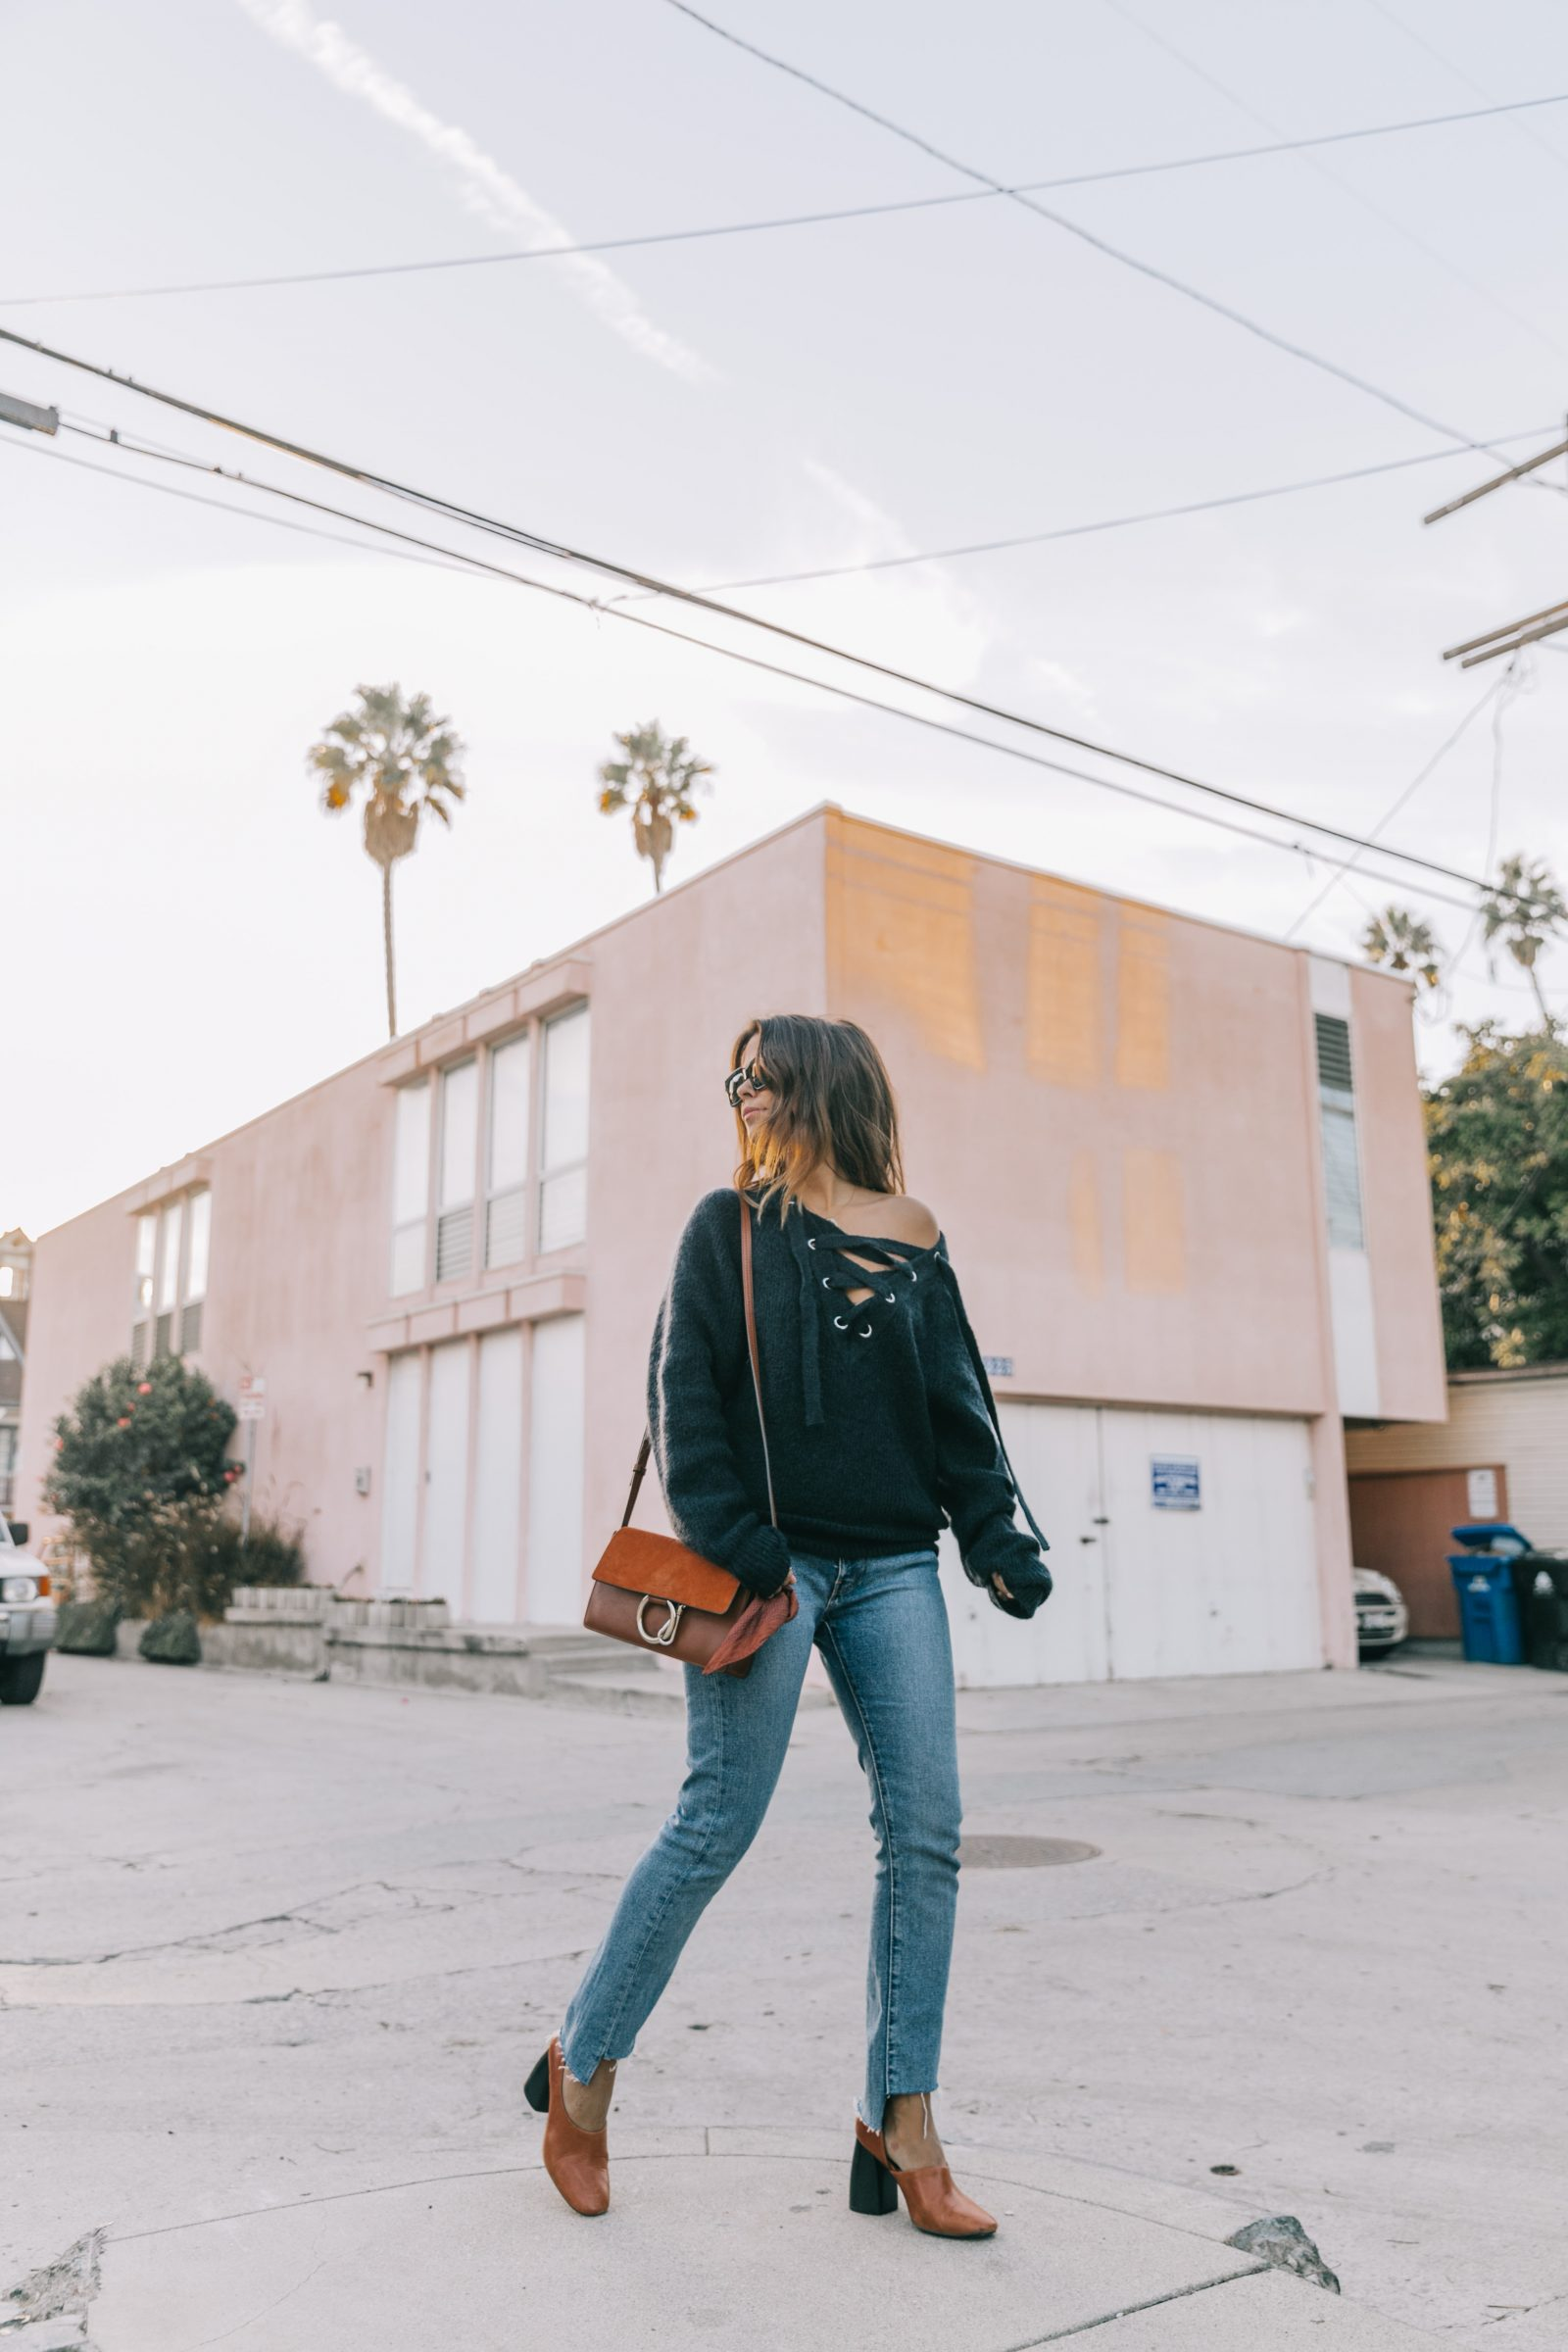 venice_beach-knotted_jumper-levis_jeans-chloe_bag-mango_shoes-horn_necklaces-outfit-street_style-los_angeles-collage_vintage-107